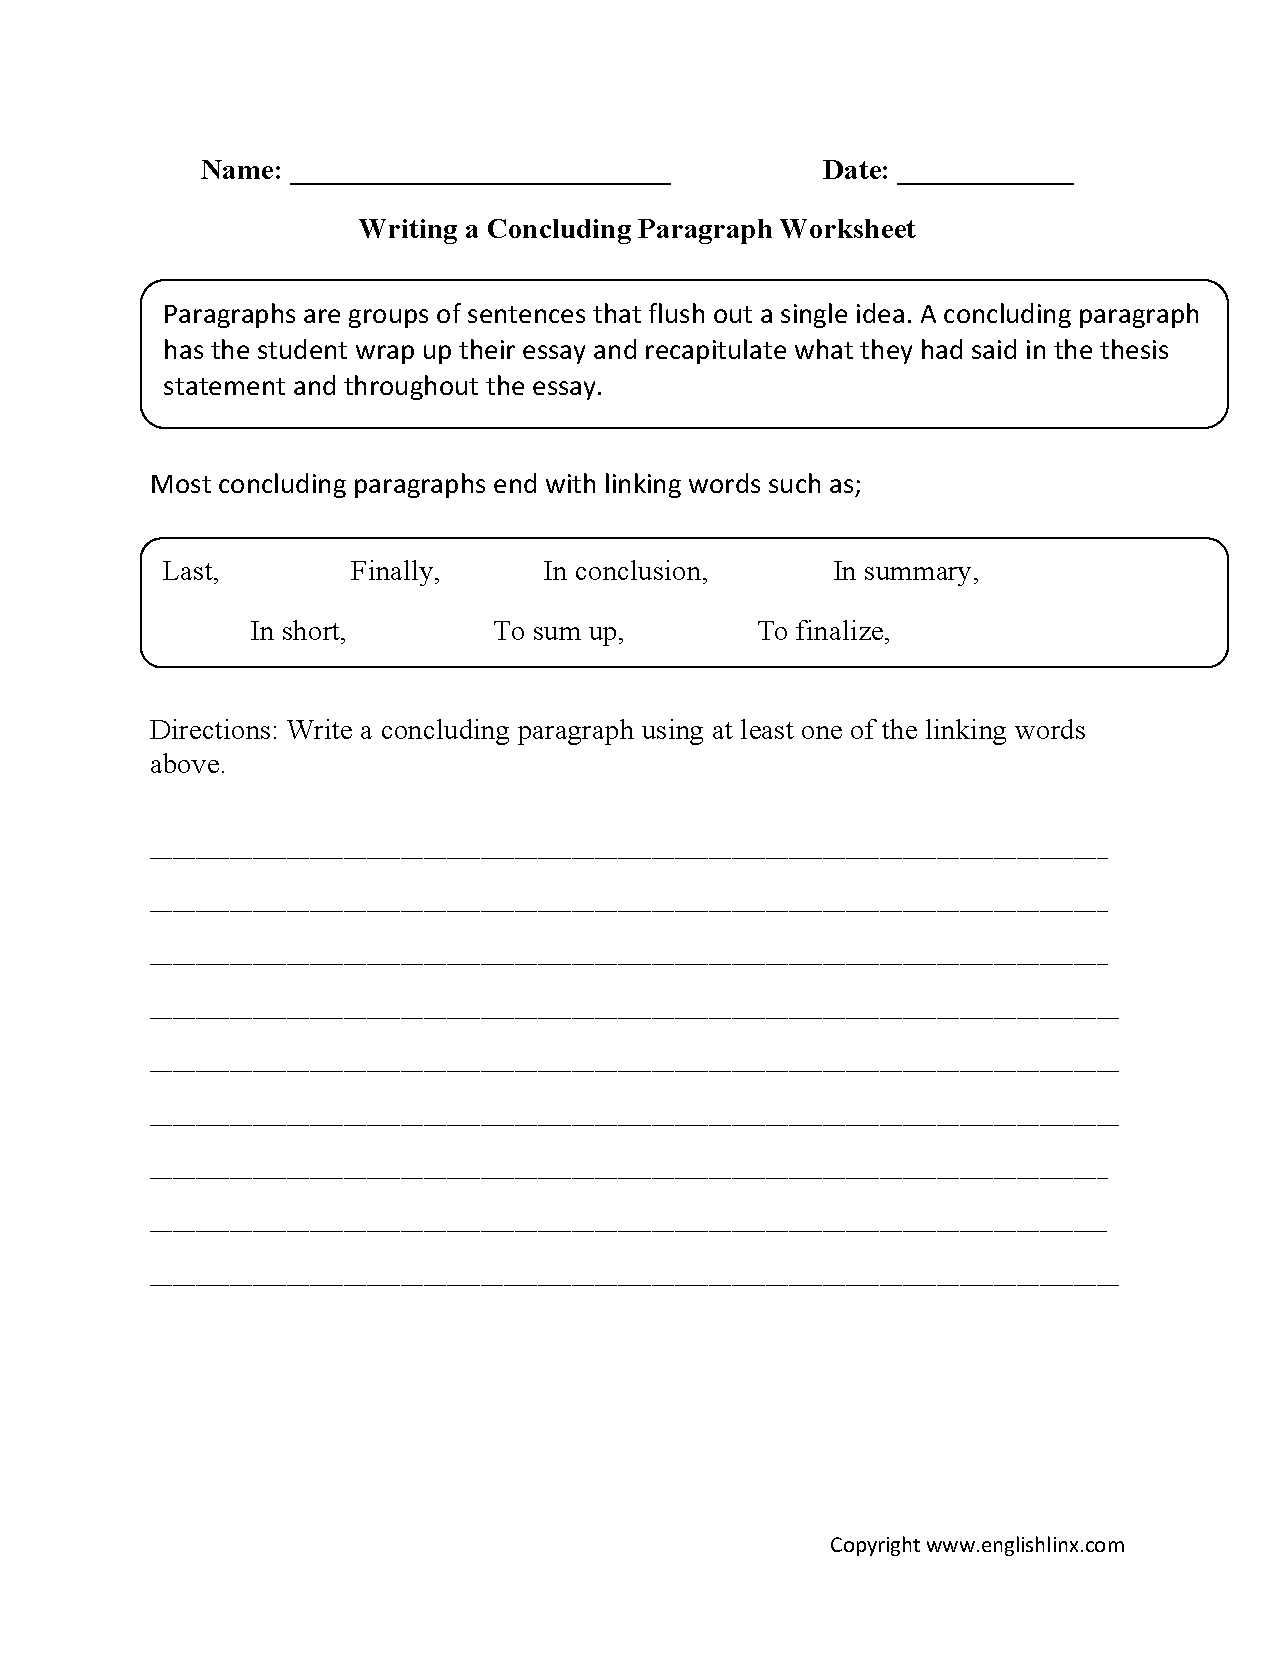 paragraph writing worksheets writing concluding paragraph worksheets writing concluding paragraph worksheets